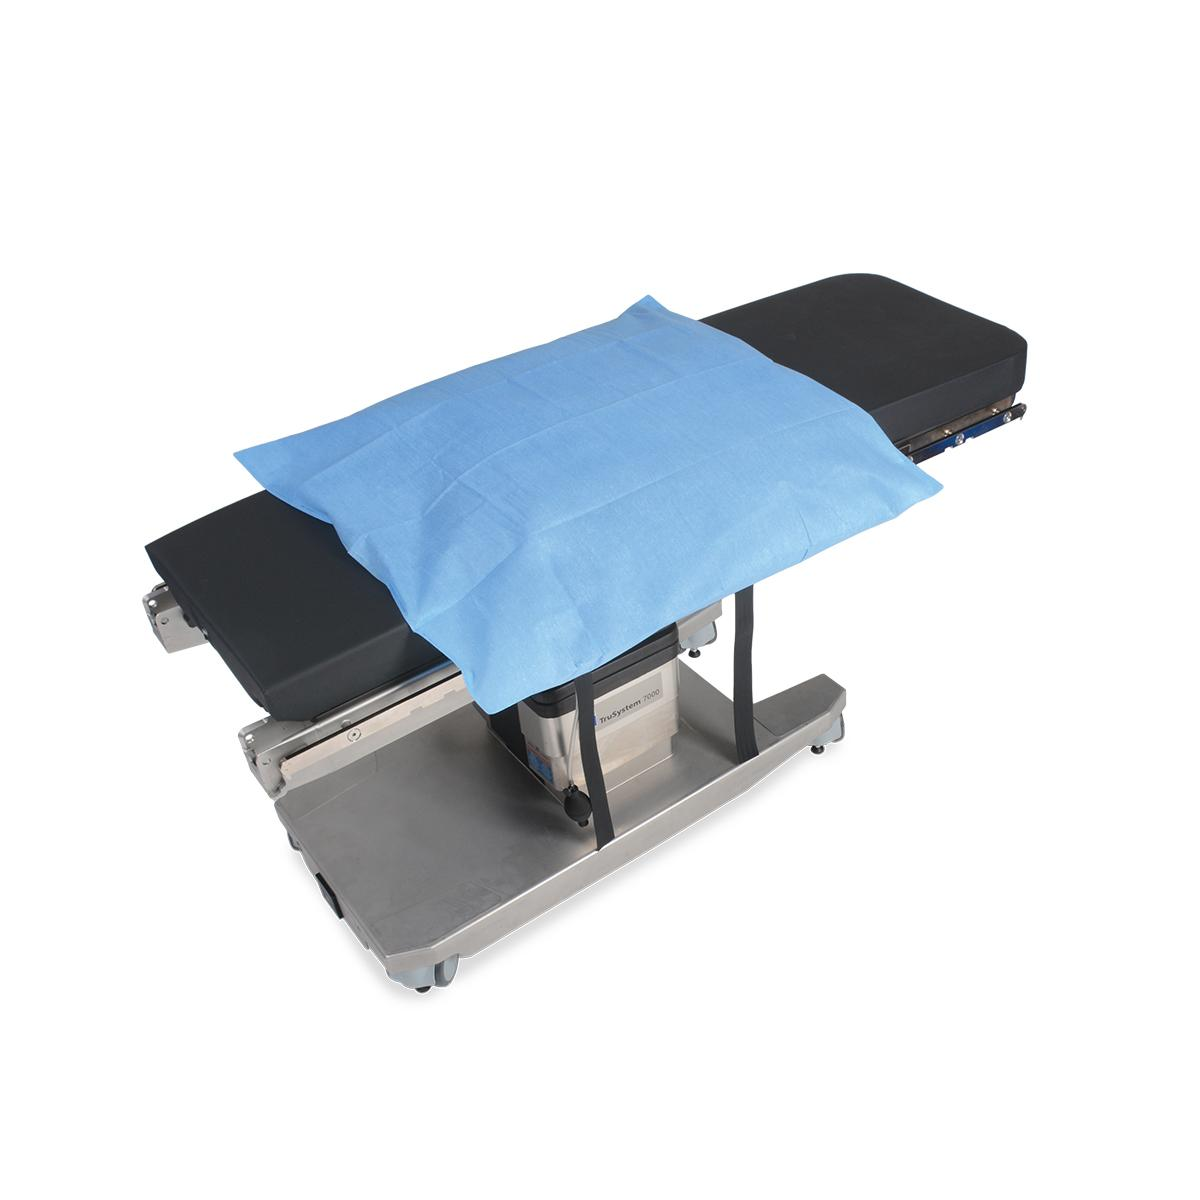 Allen® Hug-U-Vac® Lateral Positioner diagonal view with disposable cover